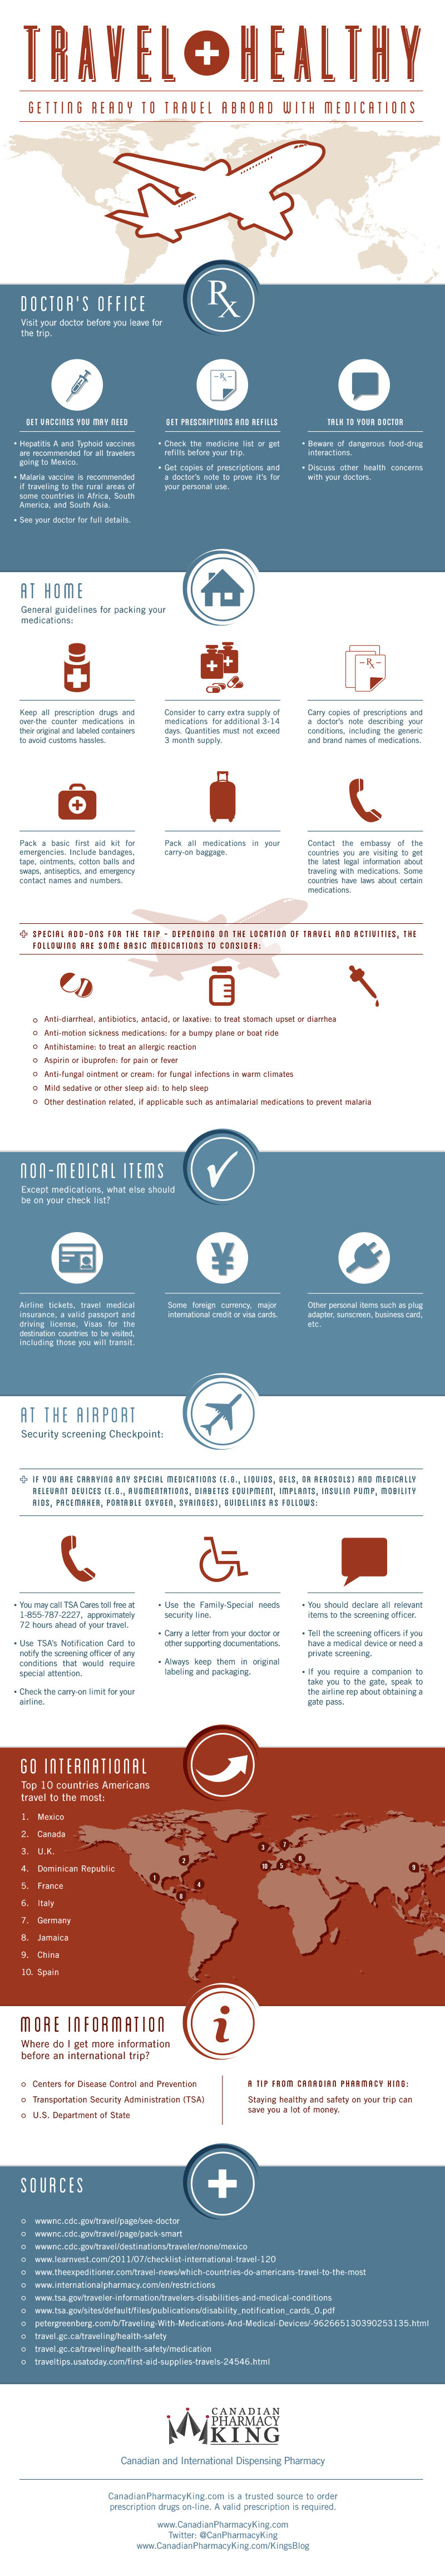 Travel Abroad with Medications